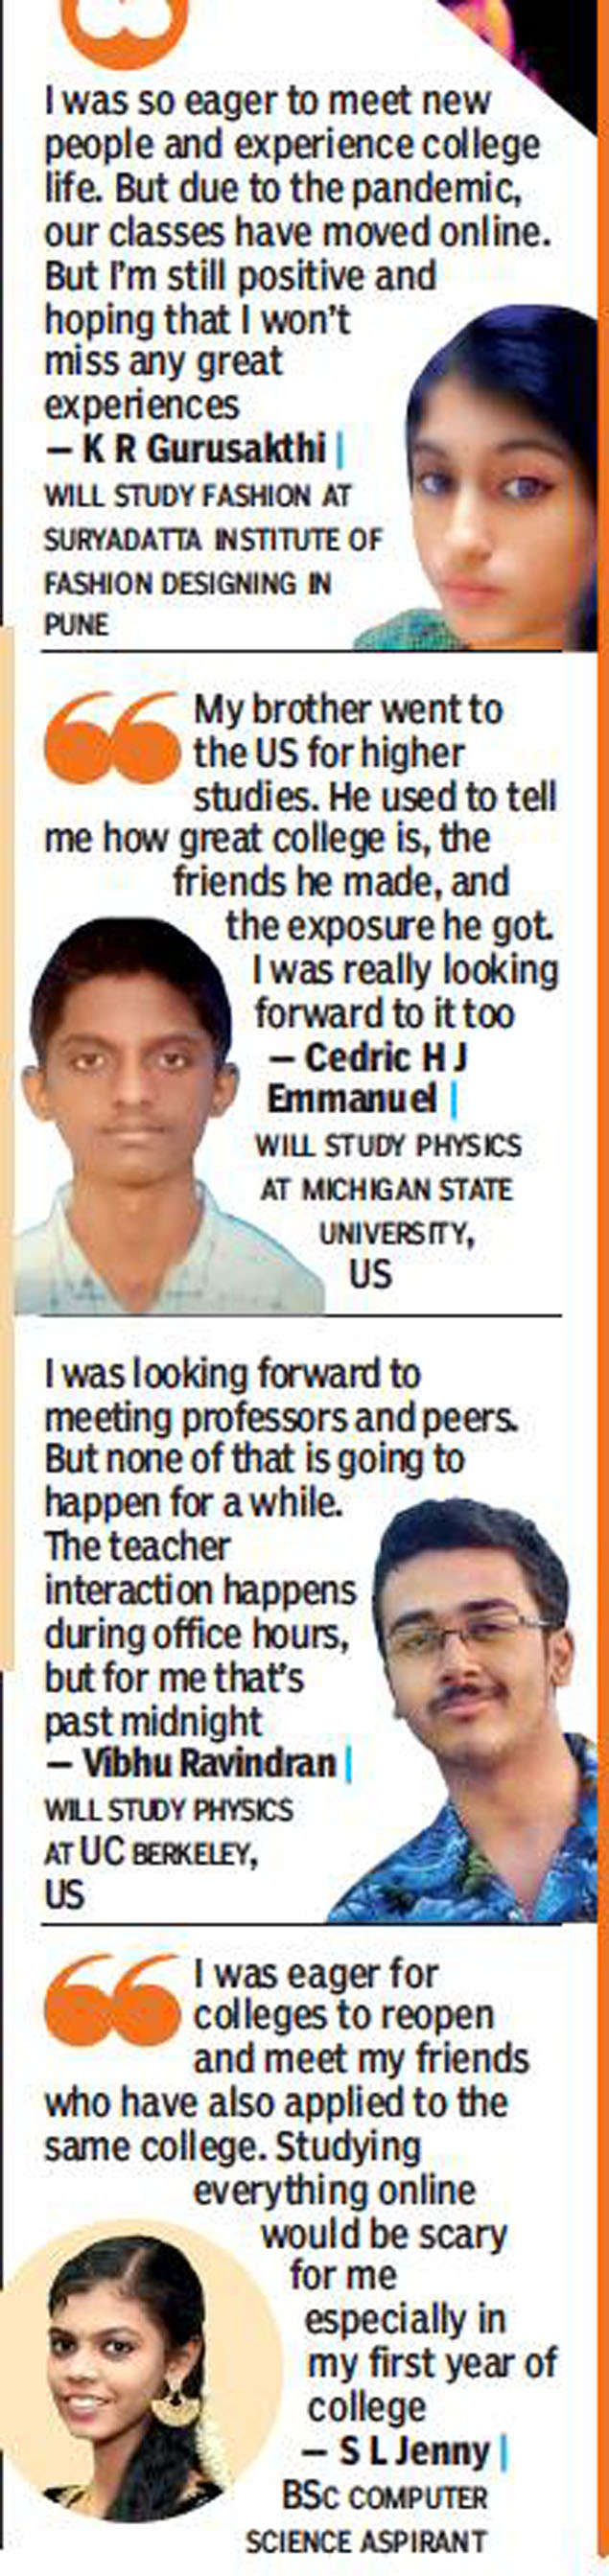 Tamil Nadu Covid In Town First Day At College Has To Wait Madurai News Times Of India